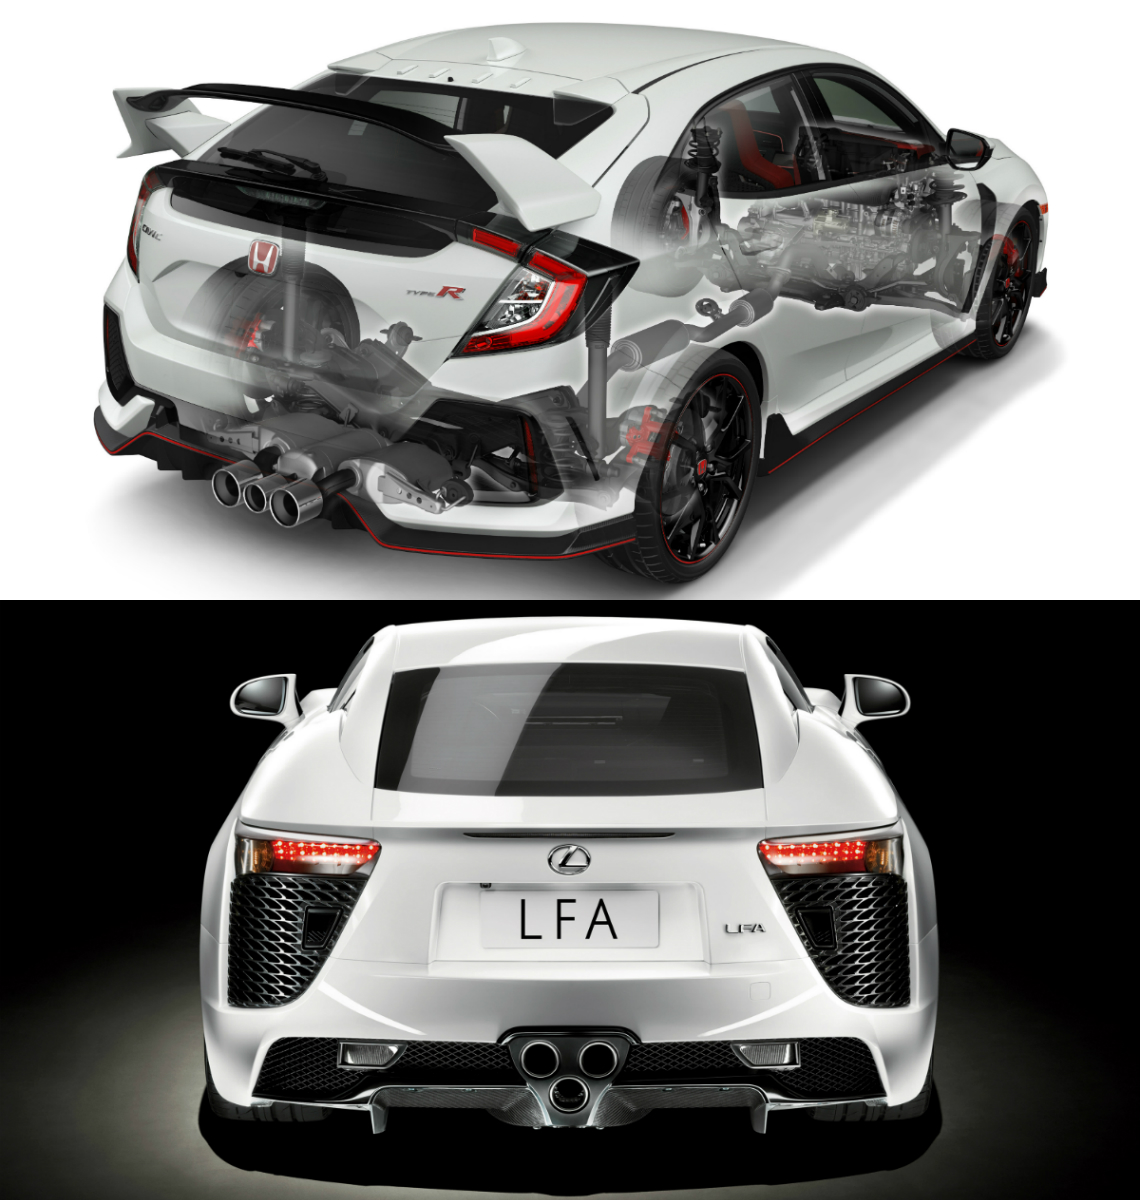 hight resolution of the triple tailpipe exhaust systems of honda s fk8 civic type r hot hatch and lexus